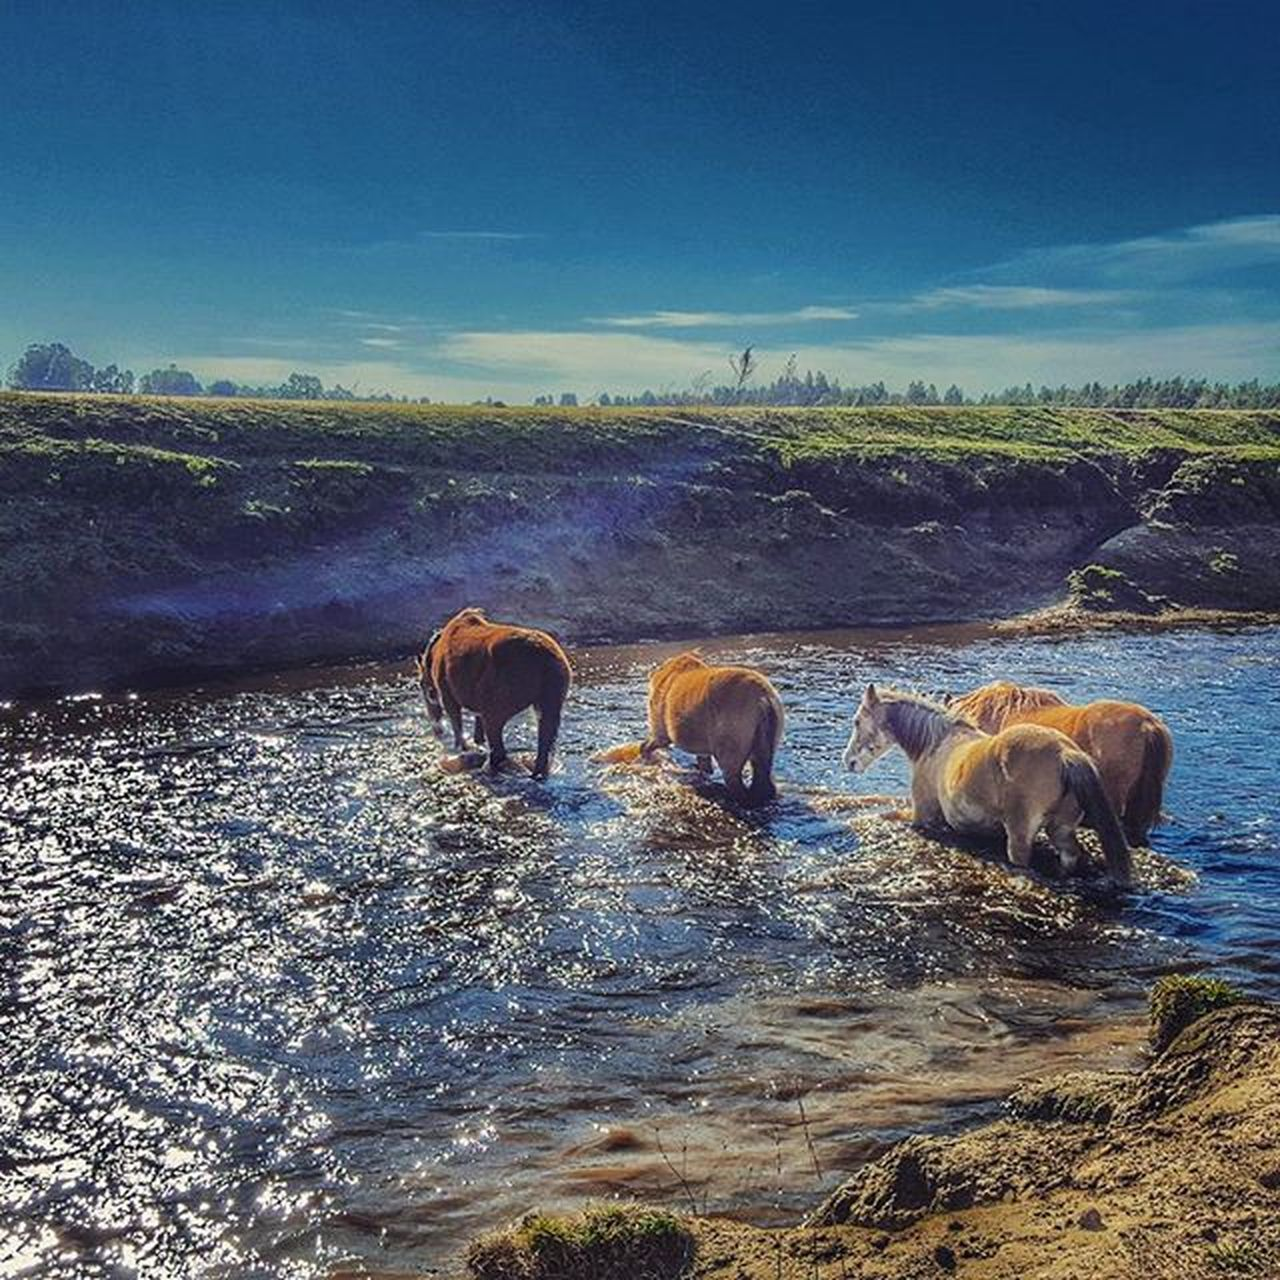 animal themes, mammal, animal wildlife, animals in the wild, group of animals, water, no people, domestic animals, nature, outdoors, day, young animal, togetherness, sky, american bison